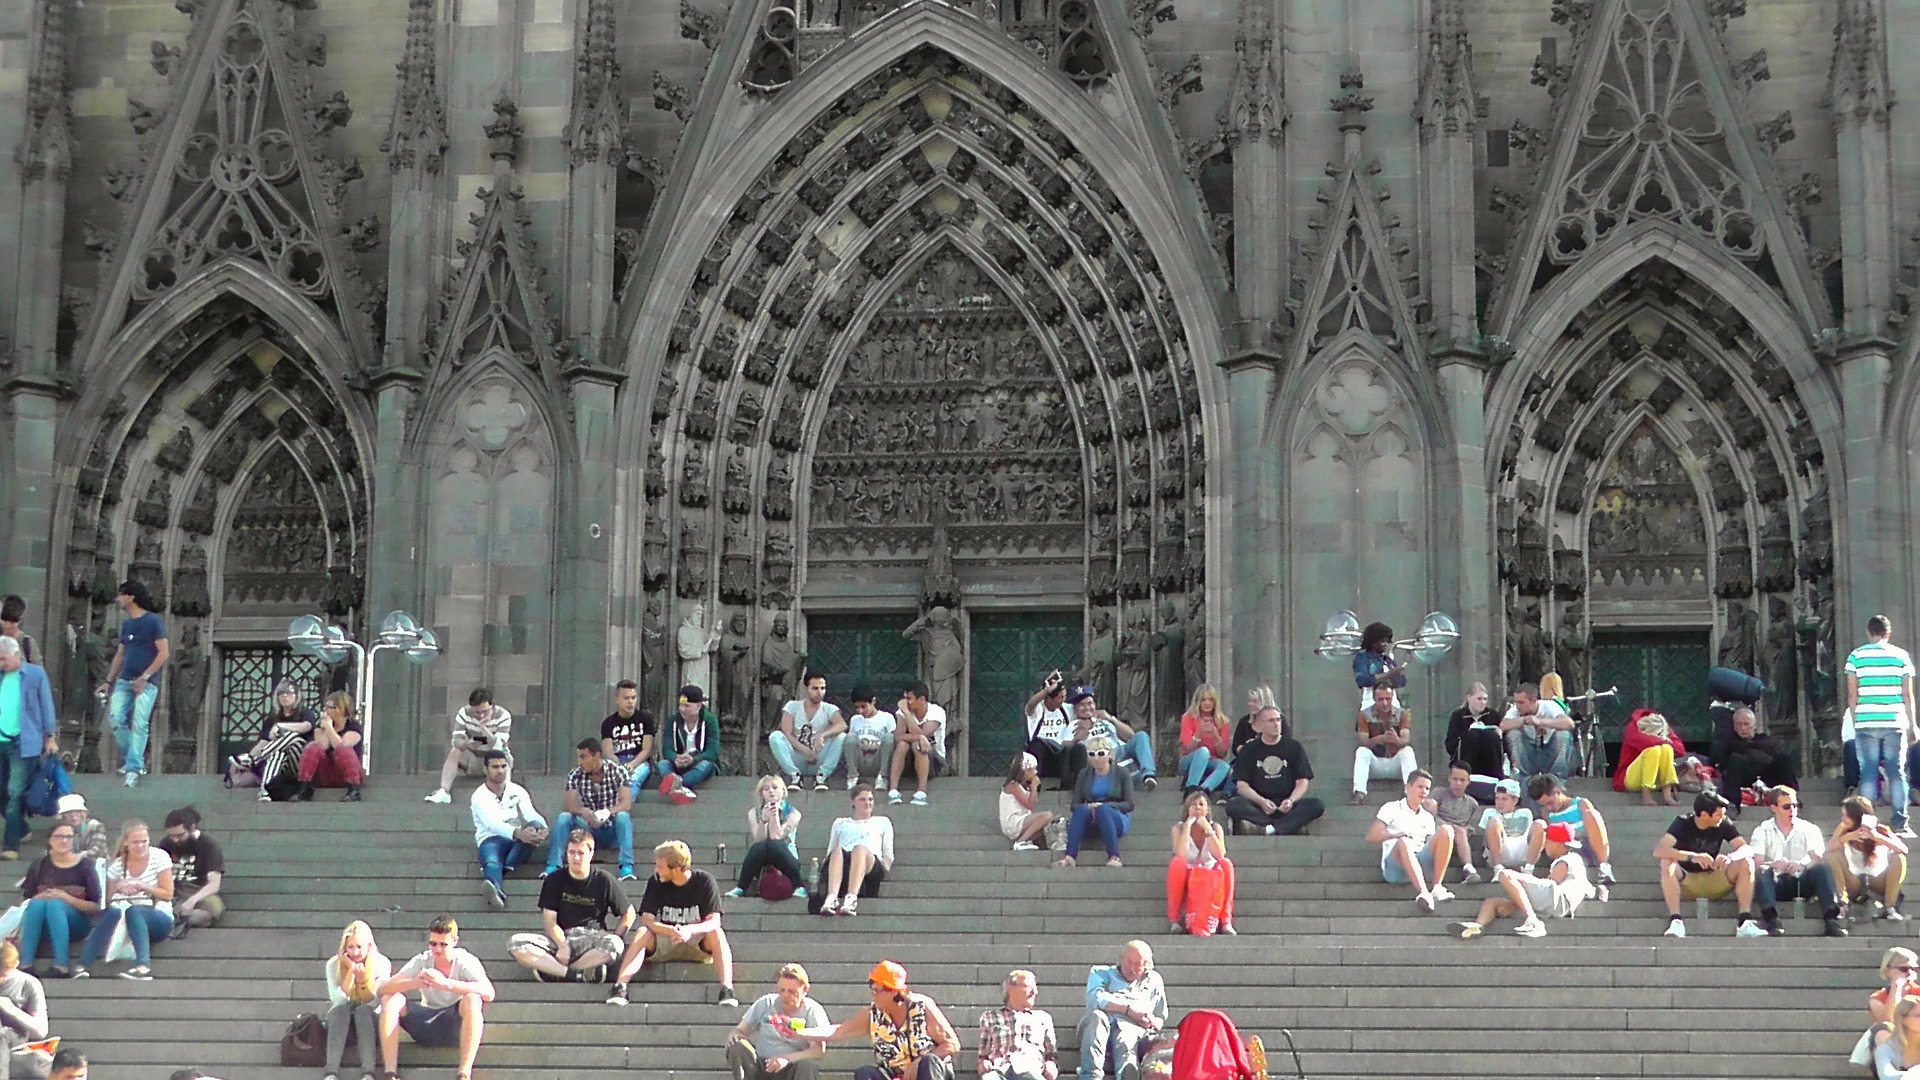 cologne-cathedral-179326_1920